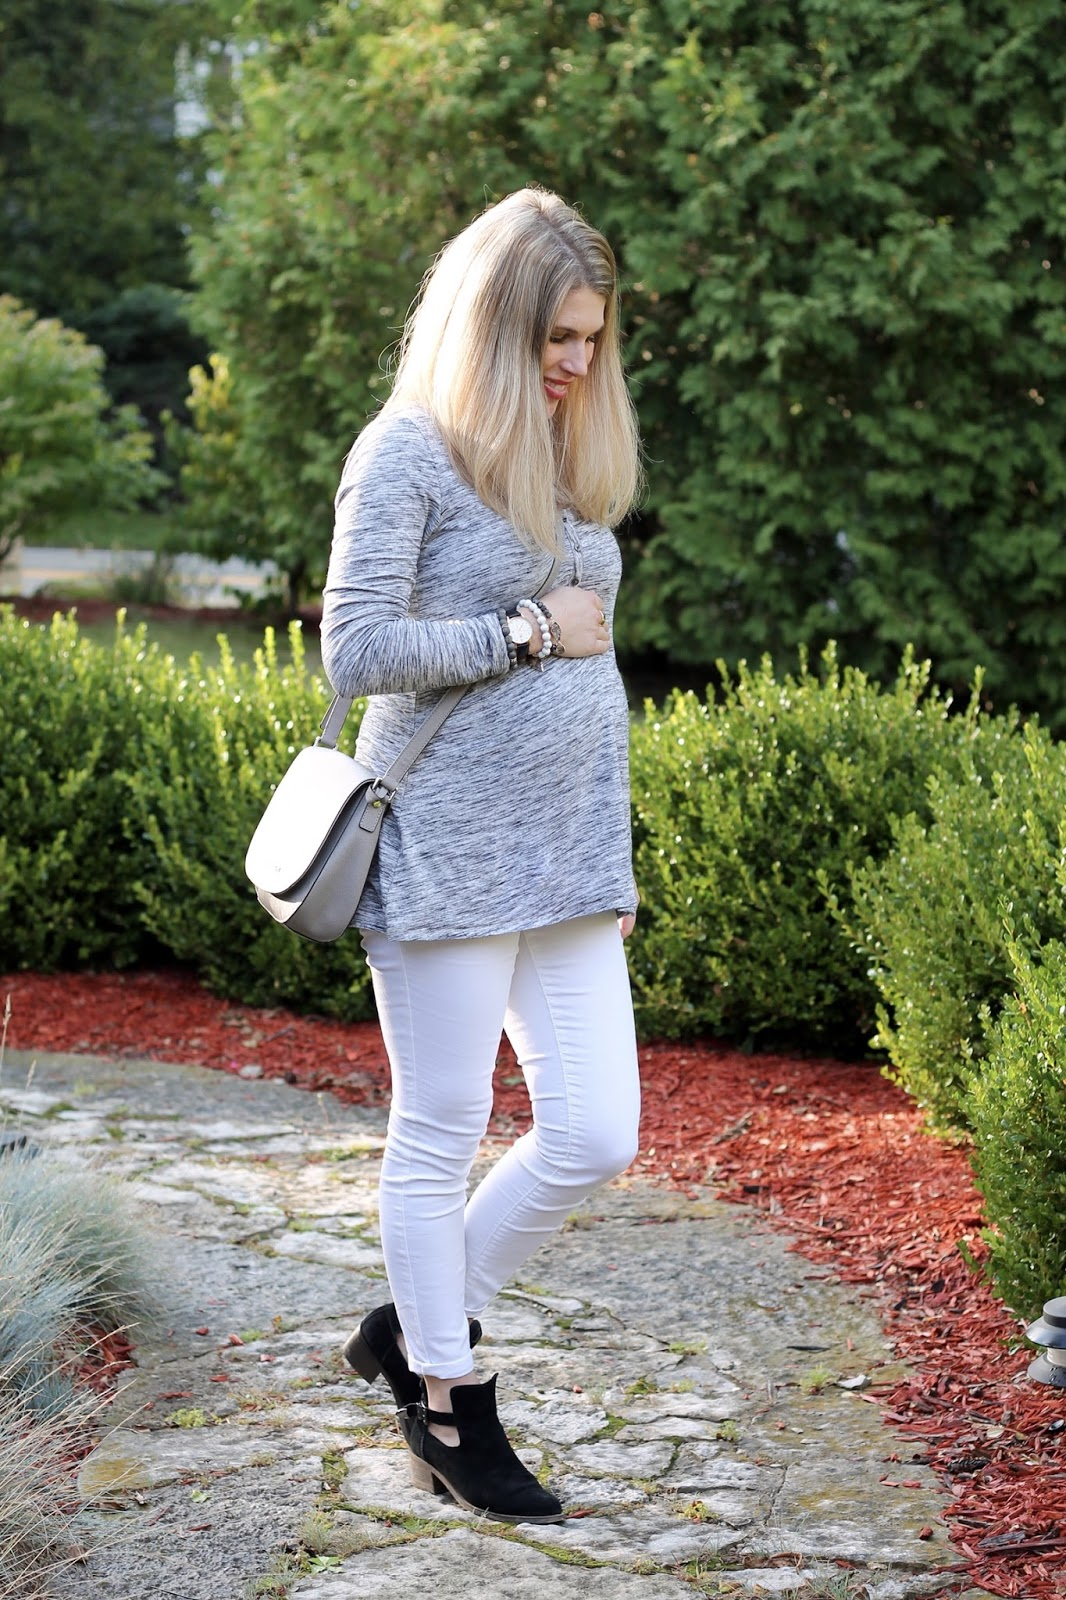 grey henley tunic, white jeans, black booties, grey saddlebag, fall maternity outfit